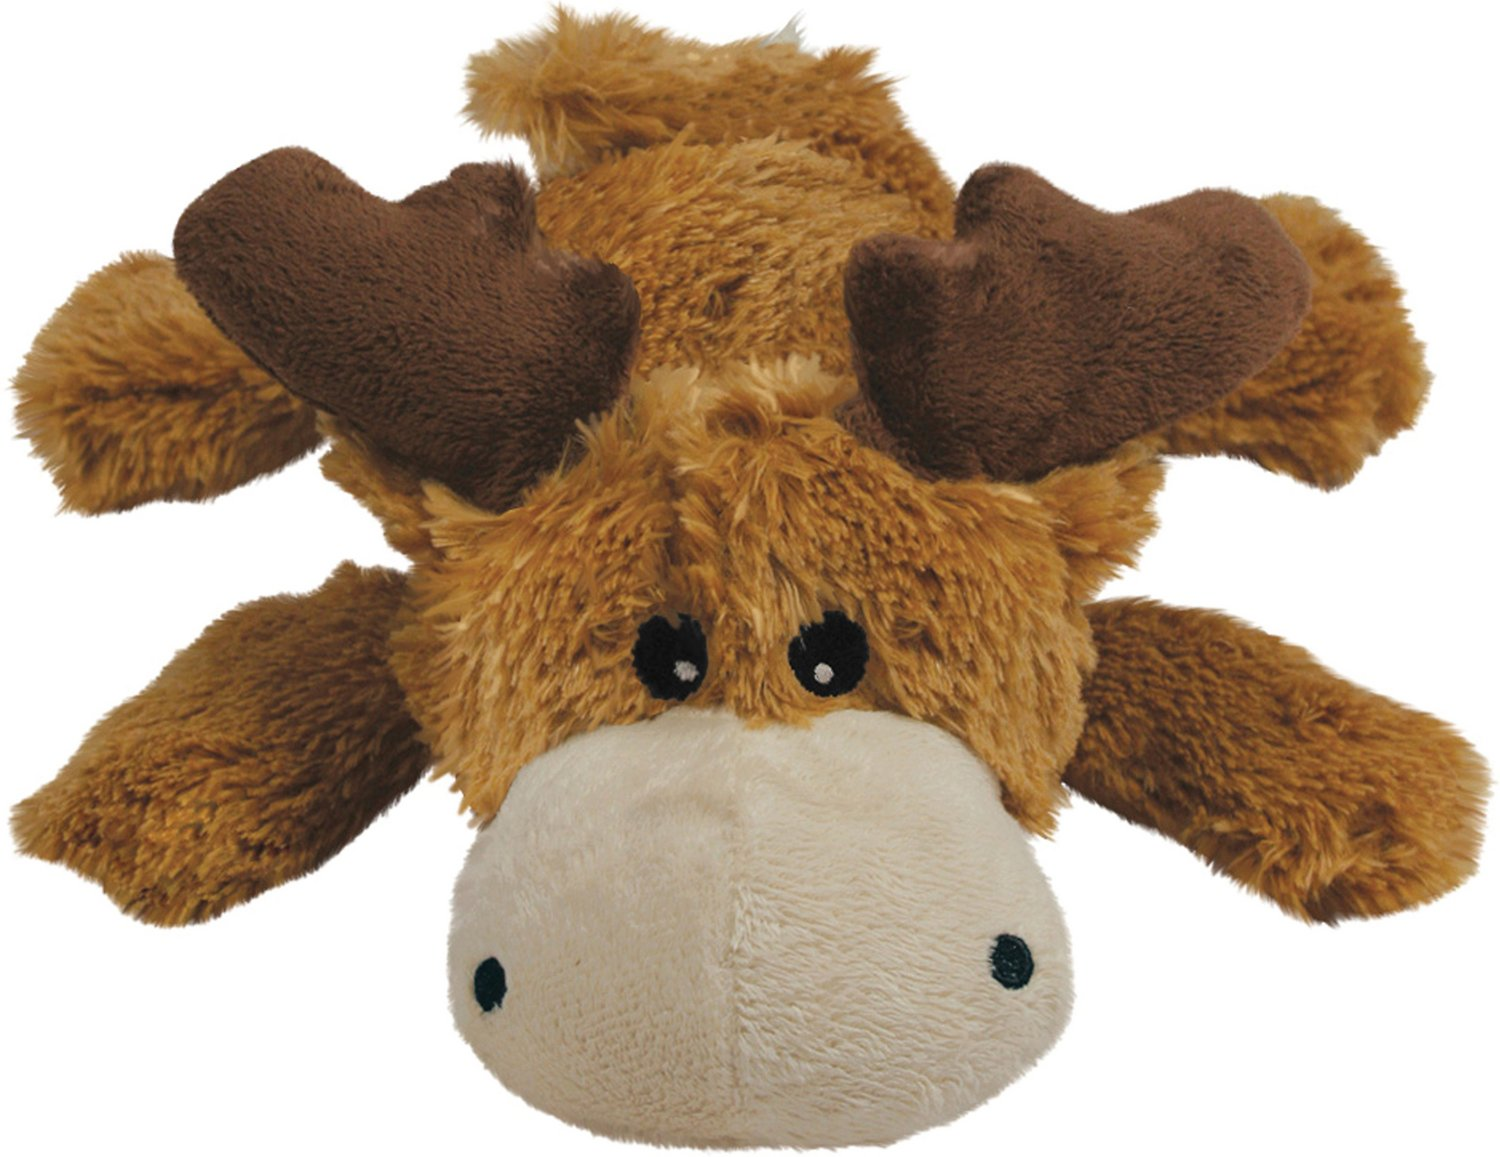 KONG Cozie Marvin the Moose Dog Toy, Medium - Chewy.com